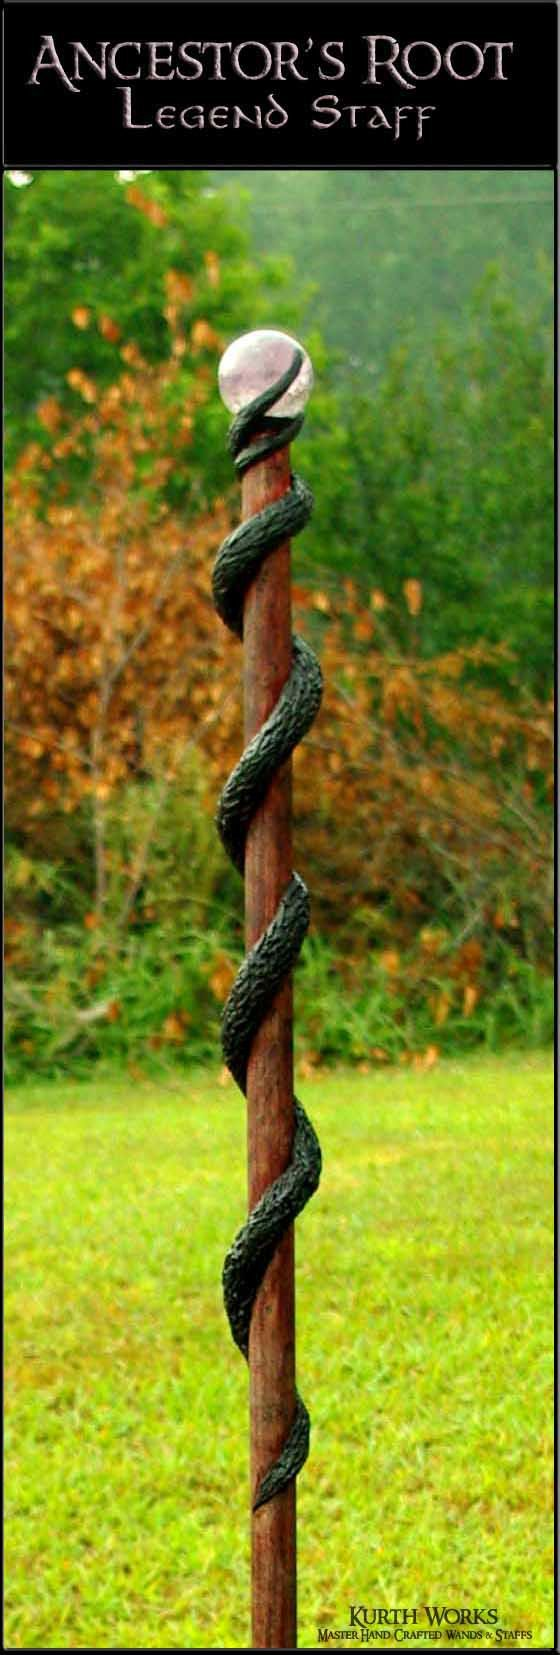 Wooden staff designs kurth works custom hand carved magic wizard wands - Ancestor S Root Crystal Wizard Magic Staff